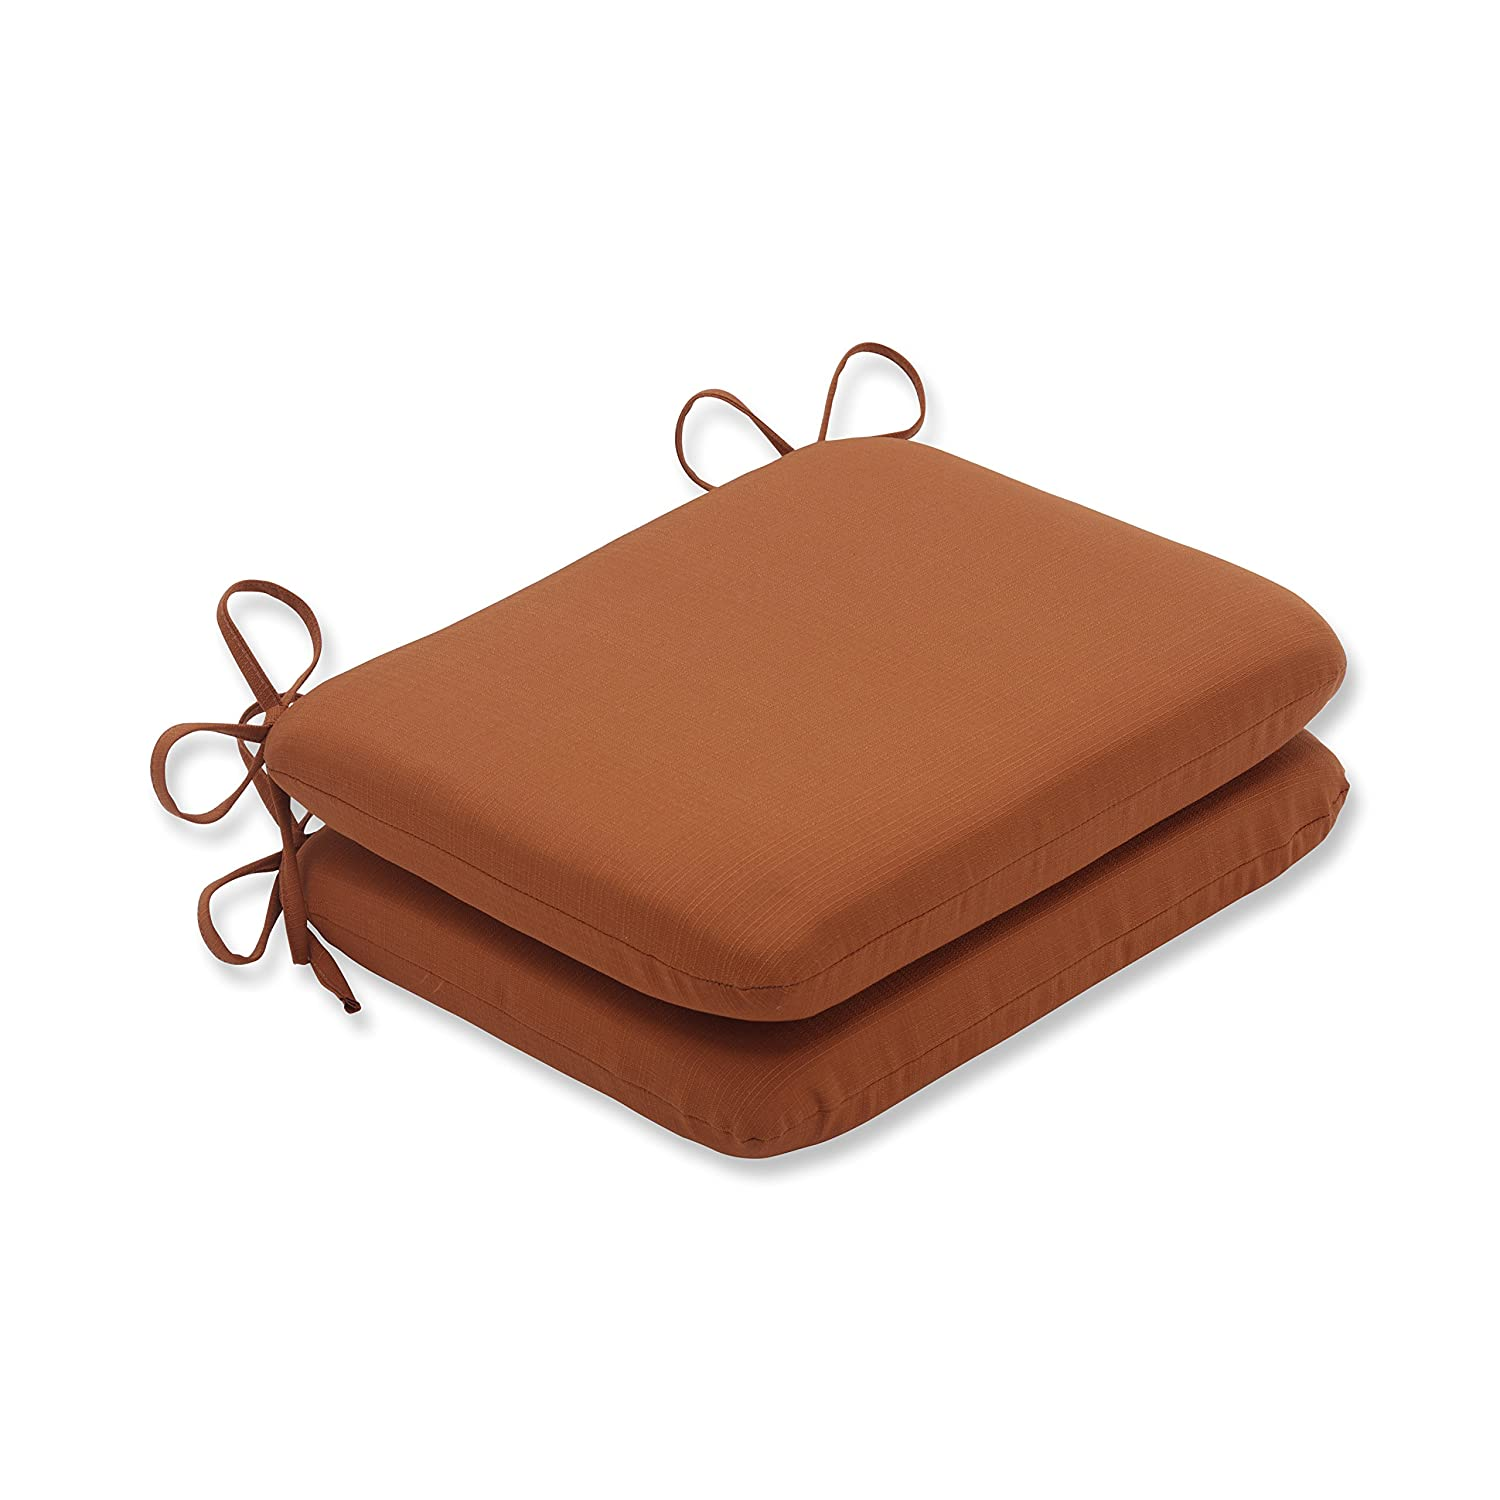 Pillow Perfect Outdoor Cinnabar Rounded Seat Cushion, Burnt Orange, Set of 2